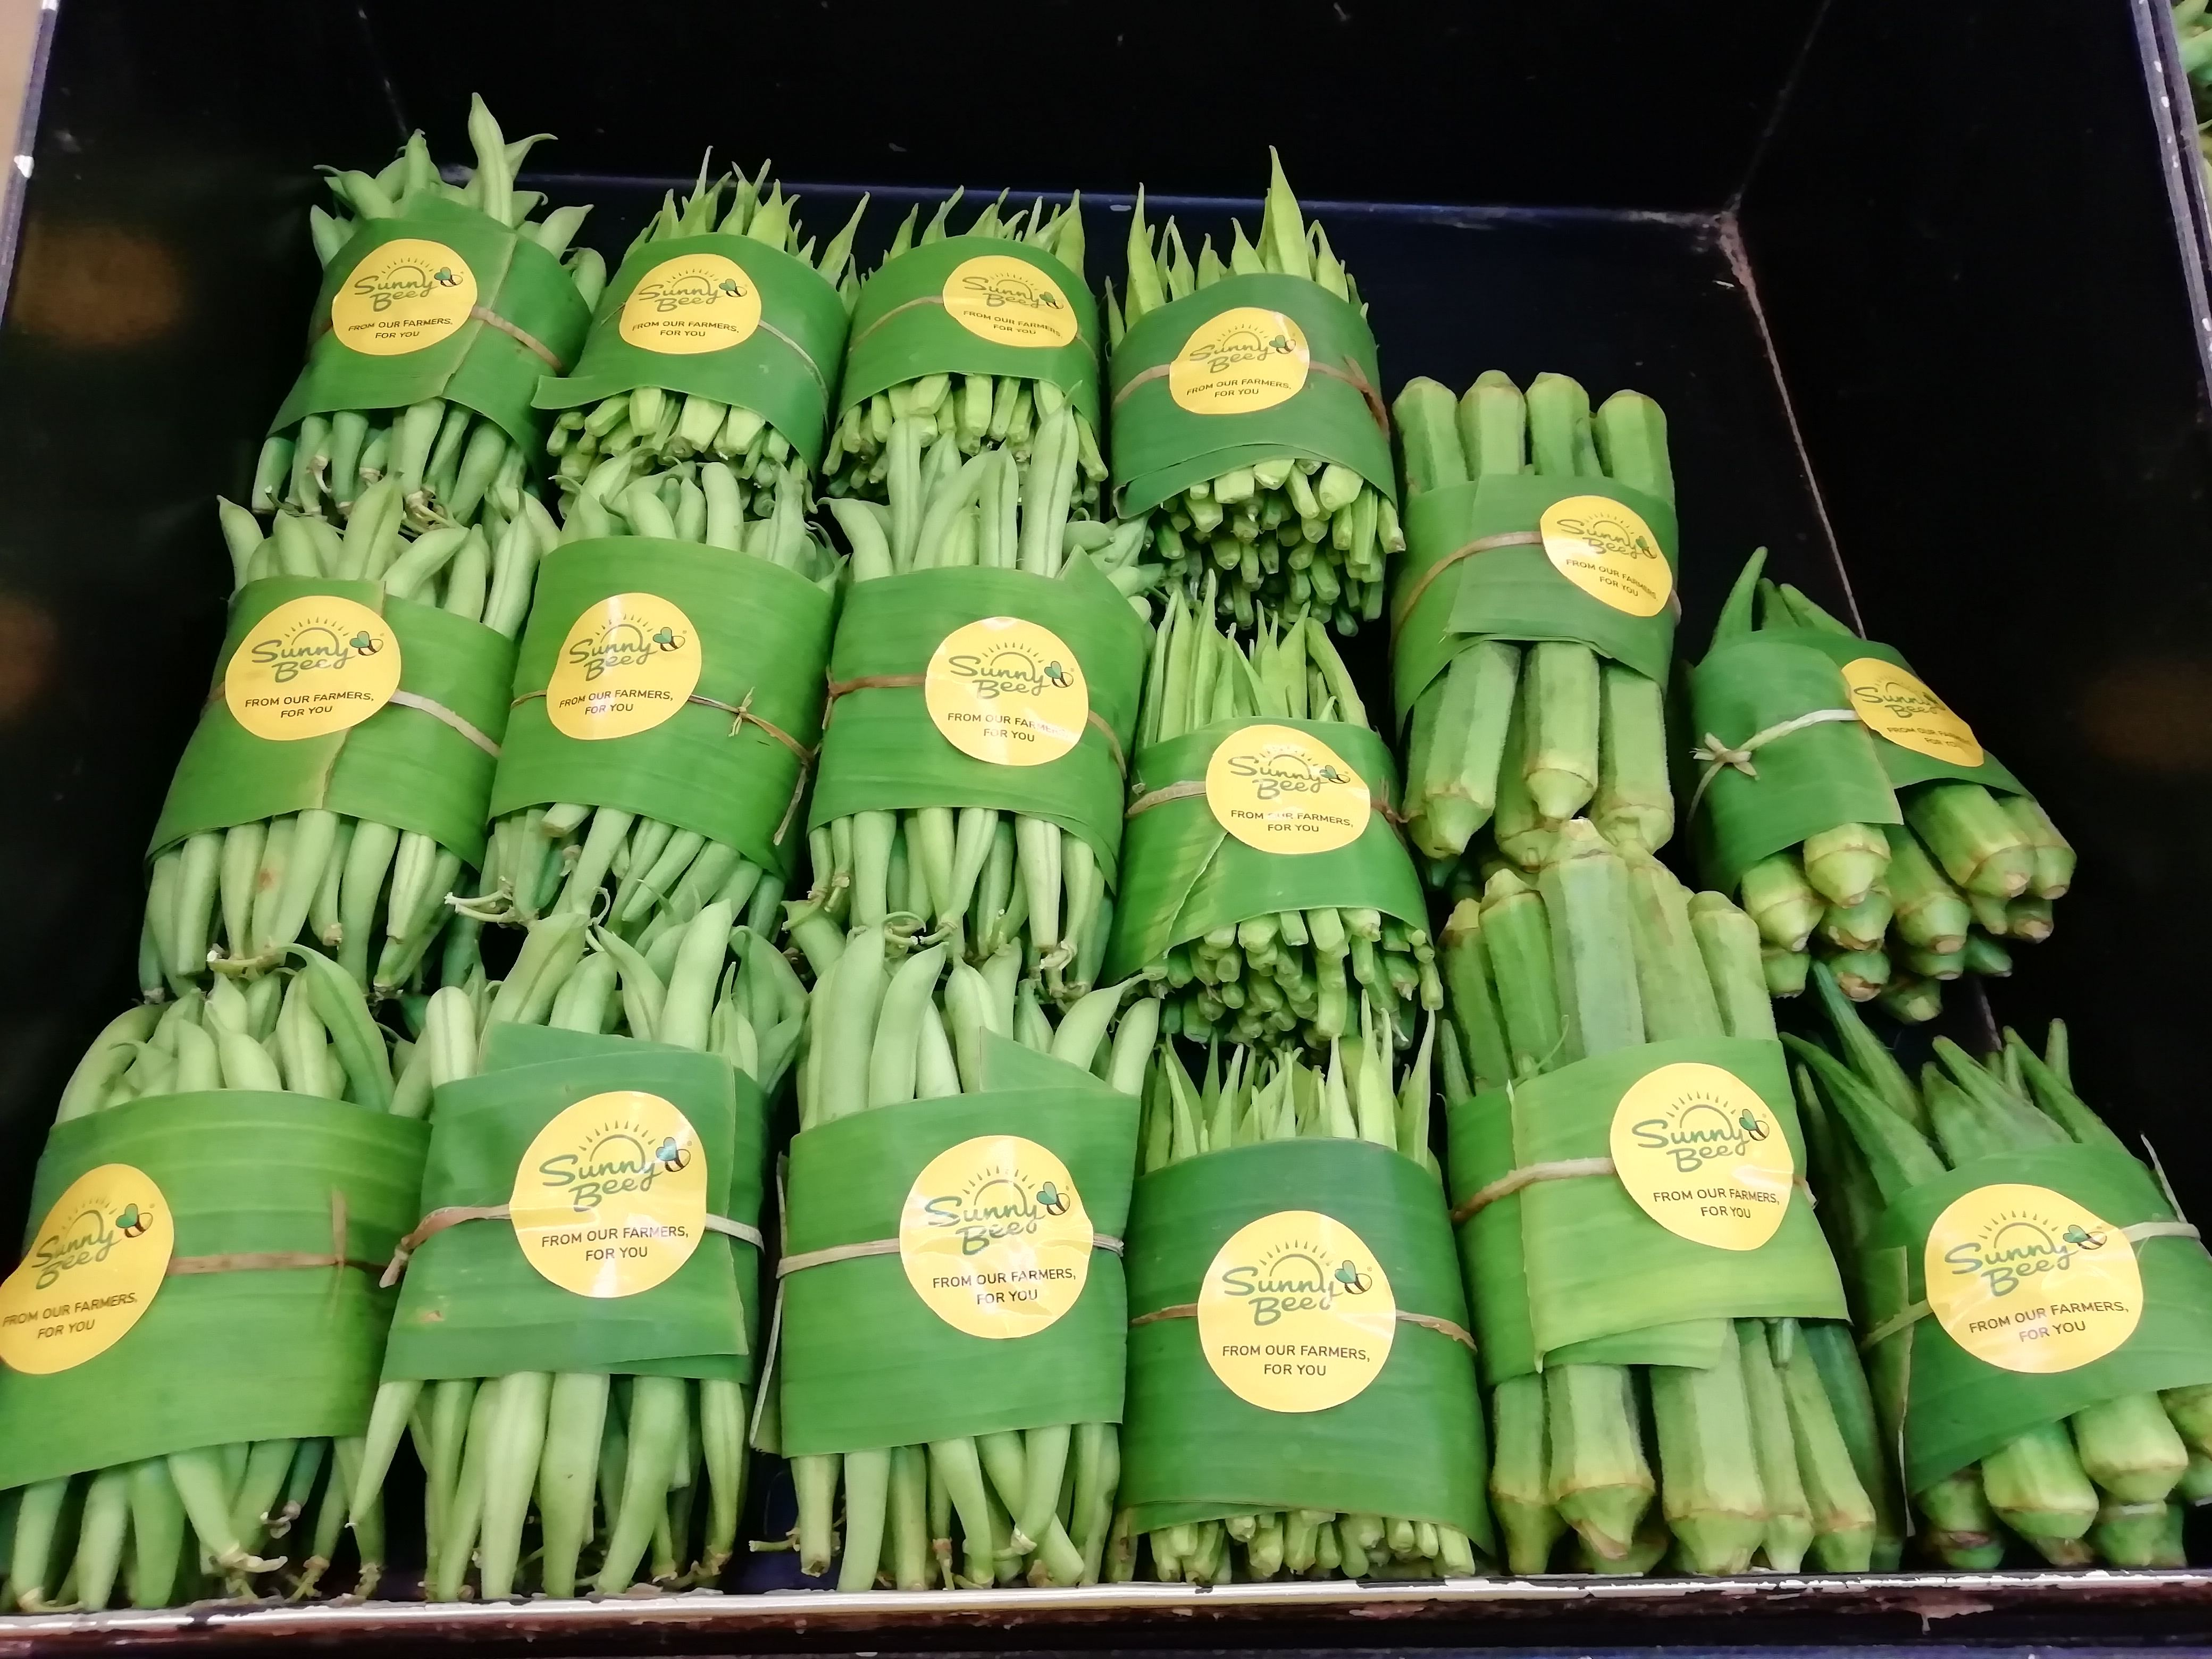 Chennai Store Uses Banana Leaves to Package Veggies!